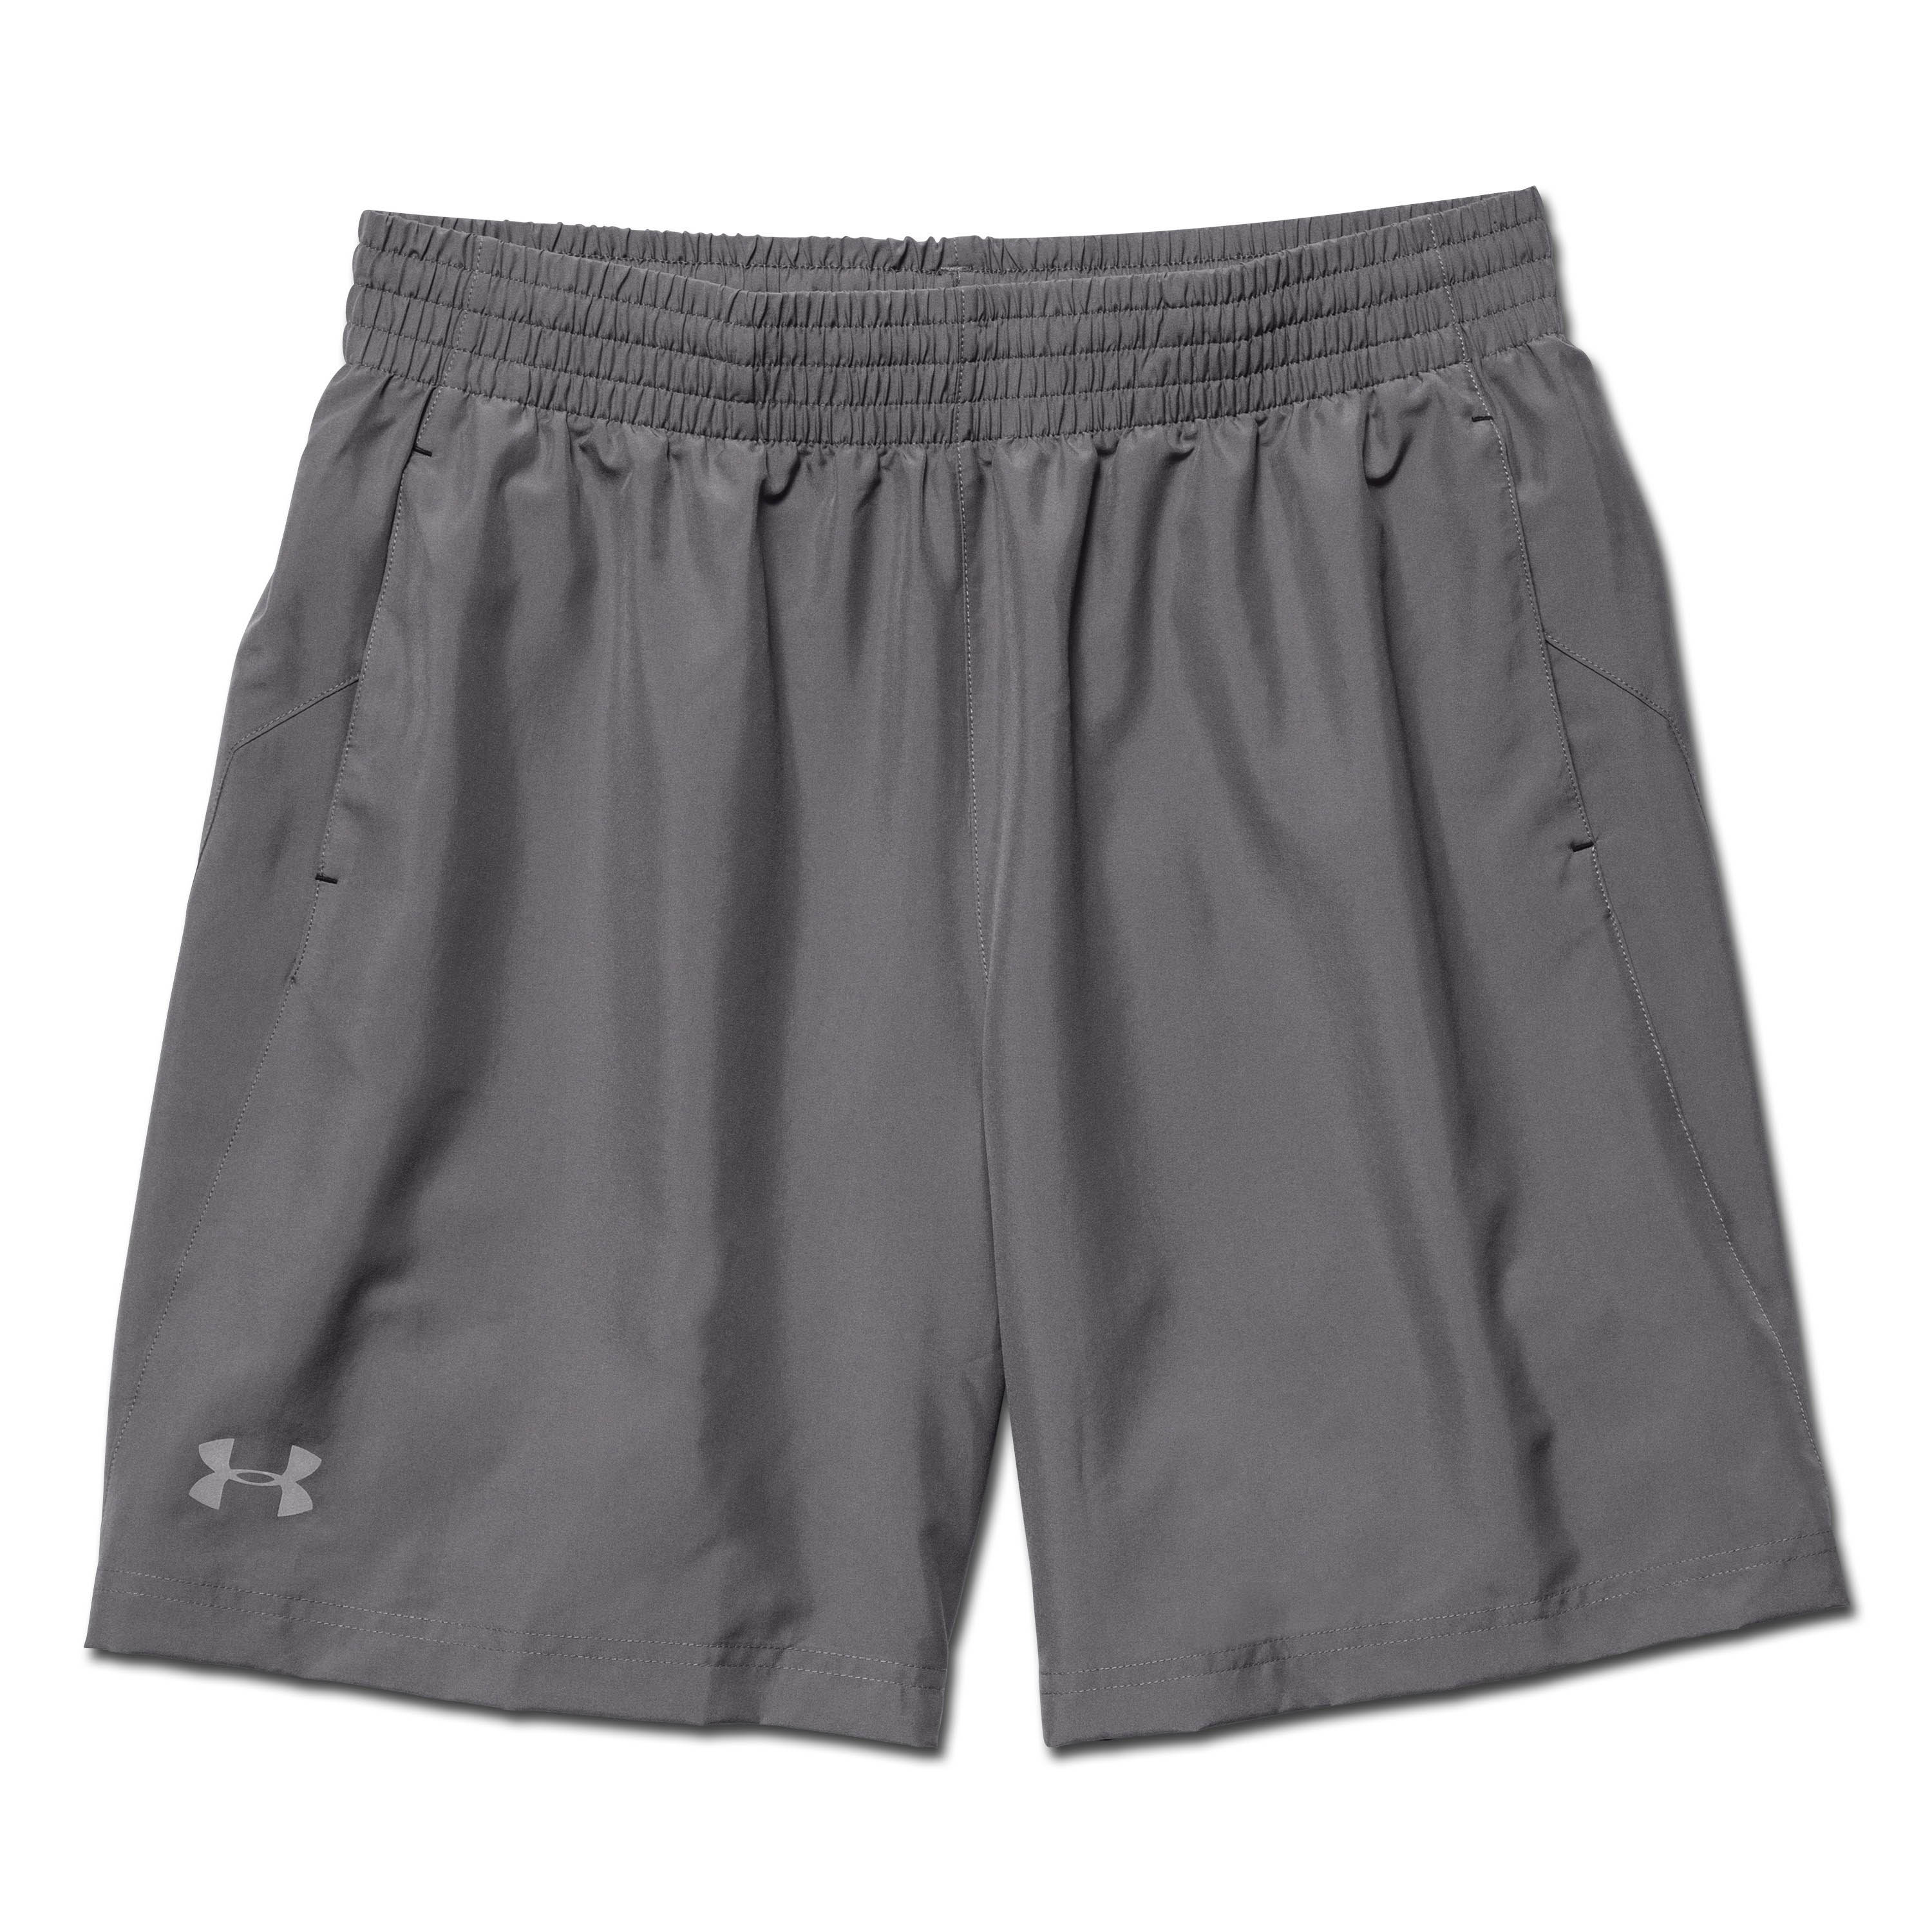 Under Armour Launch Woven Shorts 17 cm grau